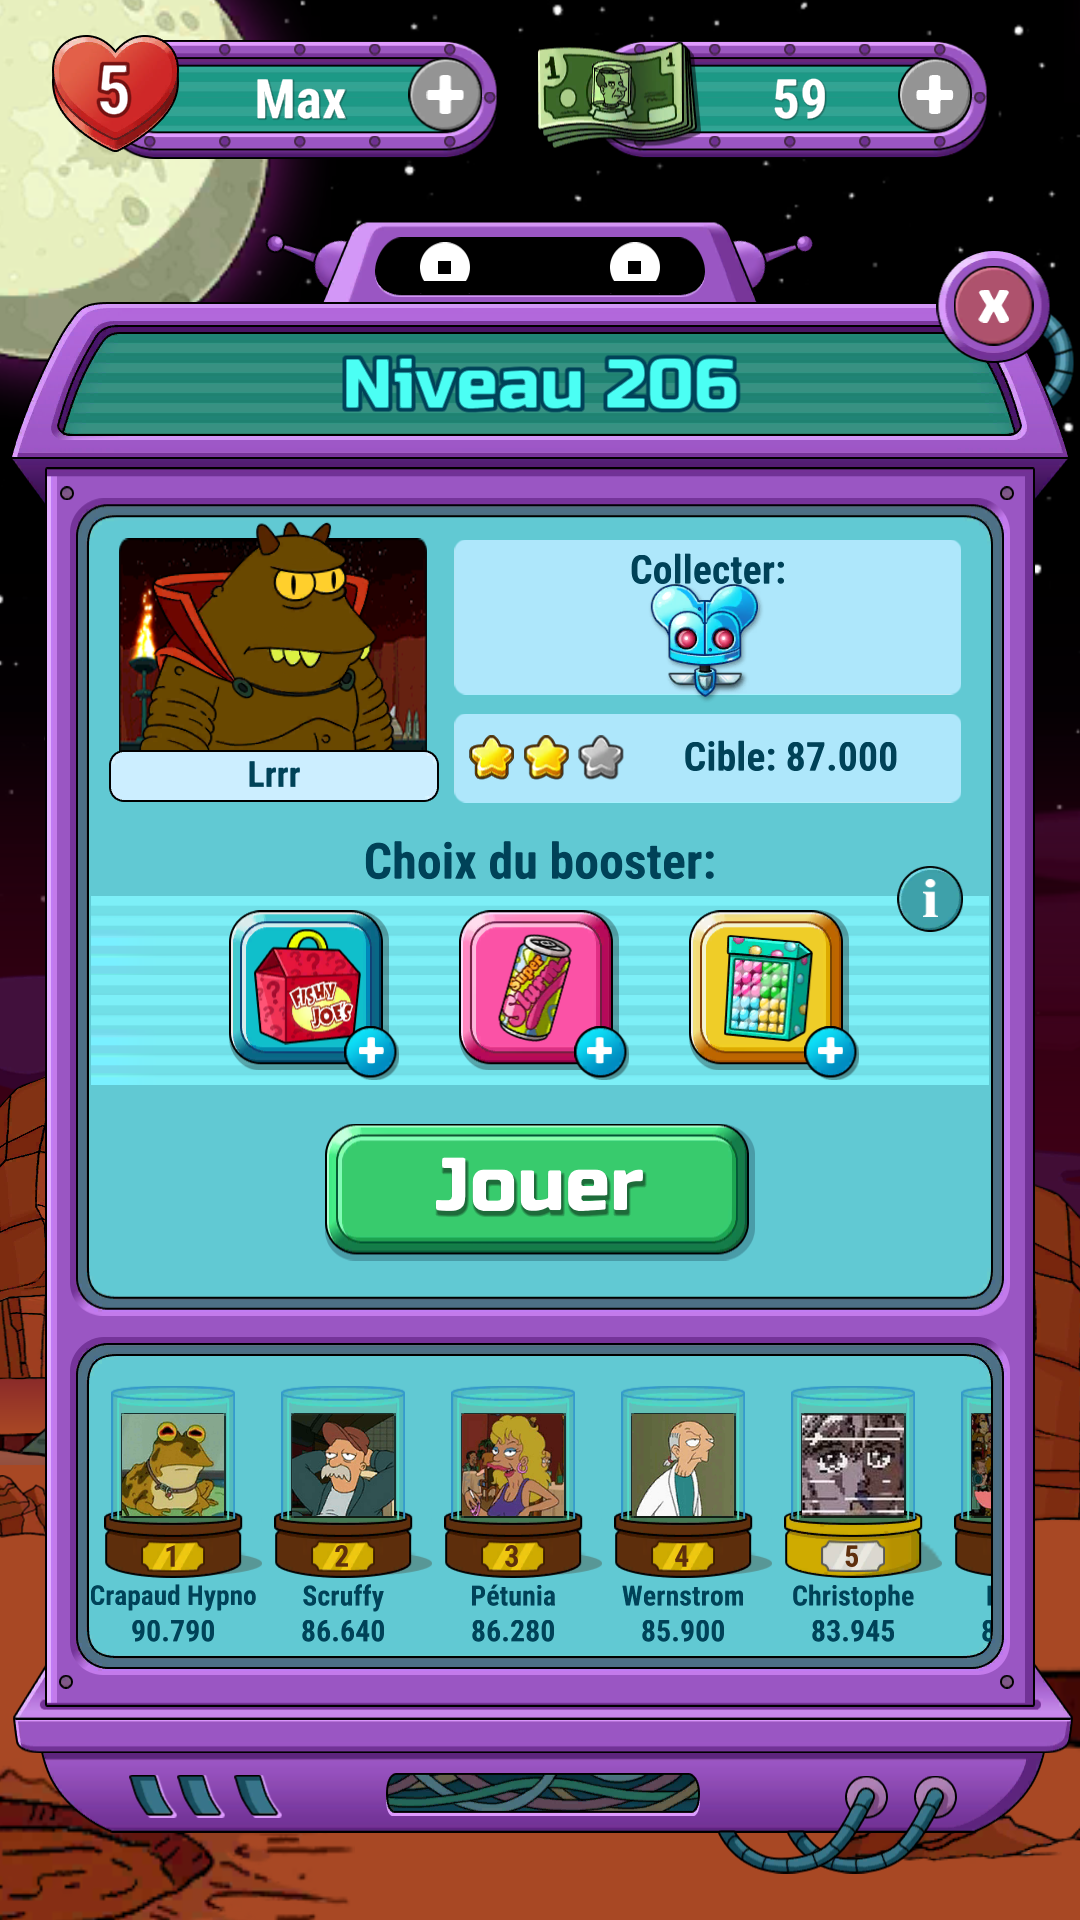 Mantalow: Futurama: Game of Drones: Level 206 (Android) 83,945 points on 2016-10-31 01:50:45